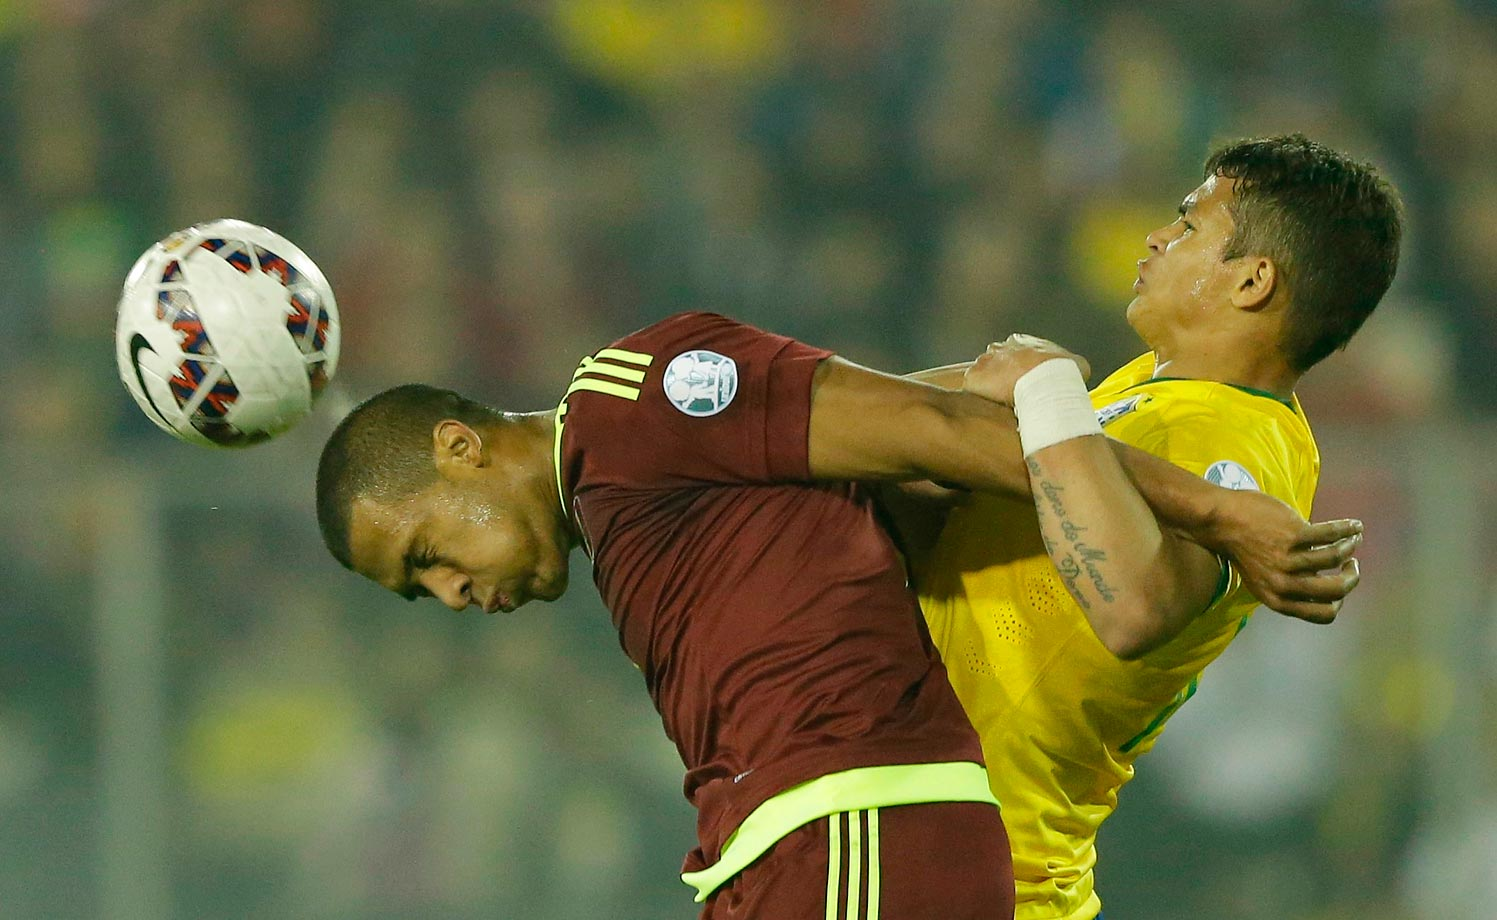 Jose Rondon of Venezuela fights for the ball with Brazil's Thiago Silva during a Copa America Group C soccer match.